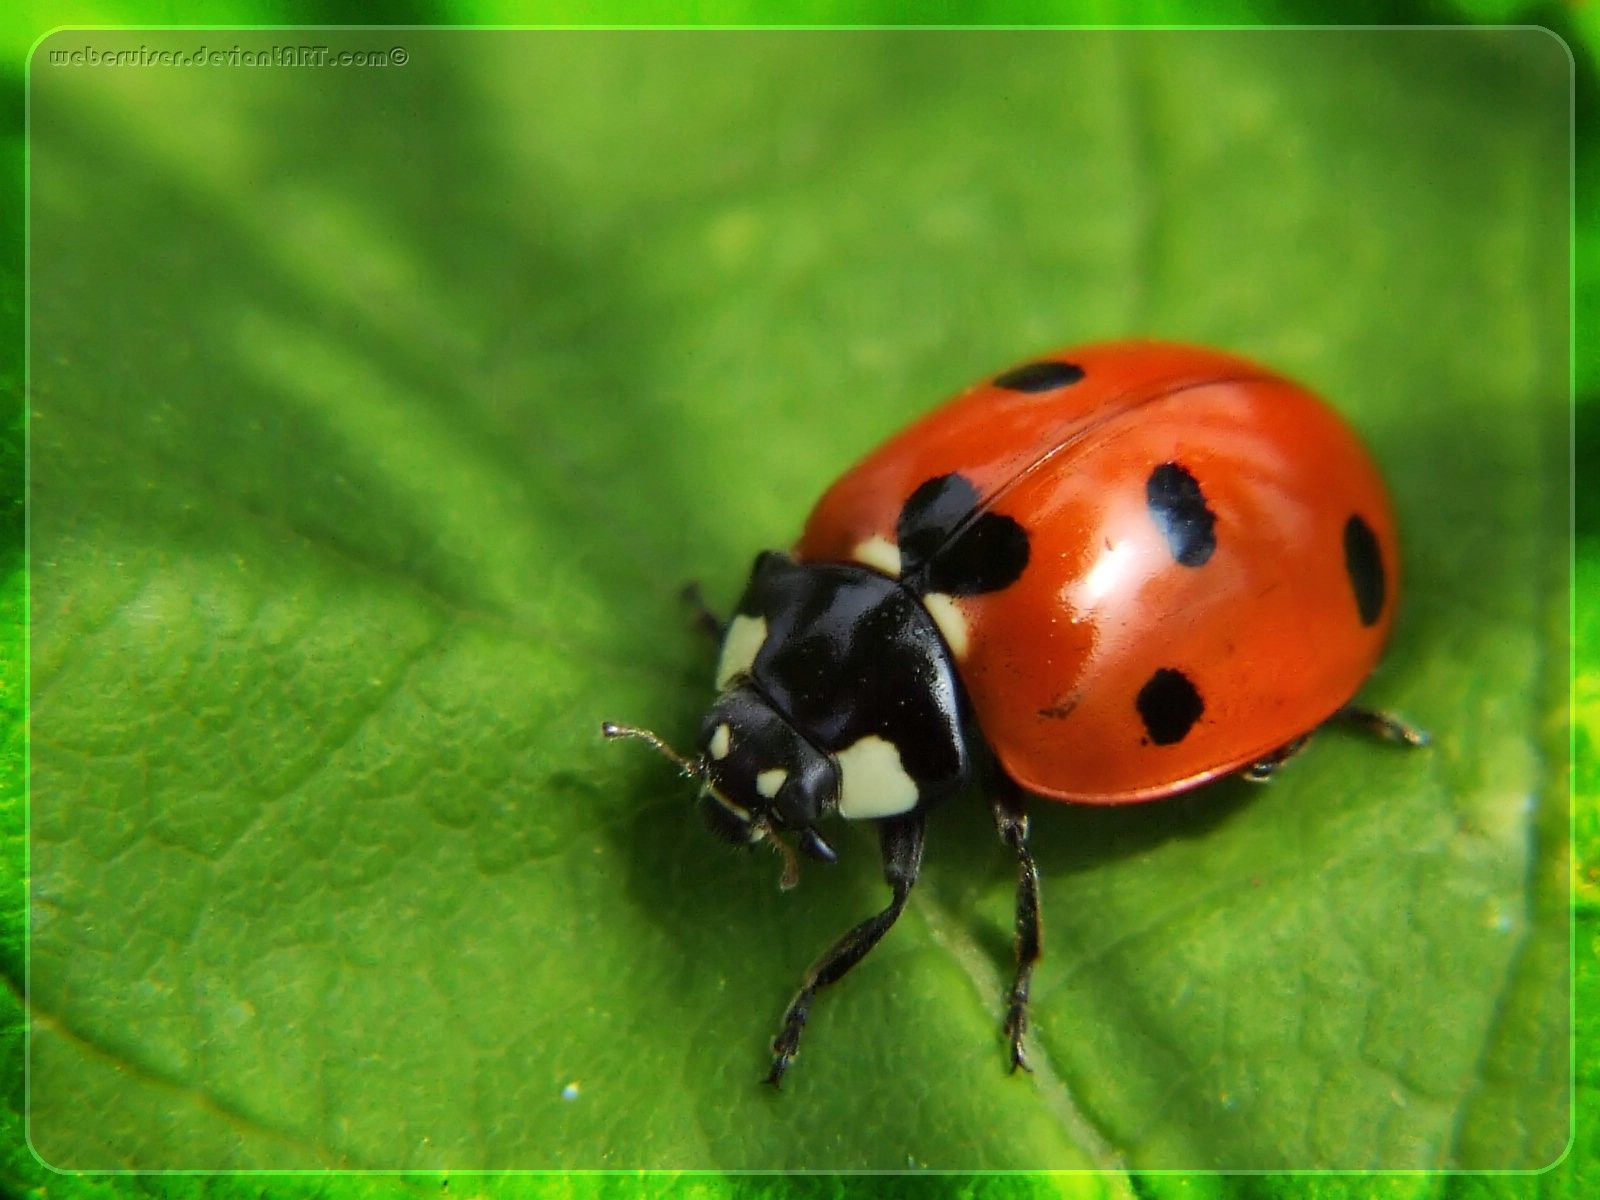 The Coccinellidae are a family of small beetles, ranging